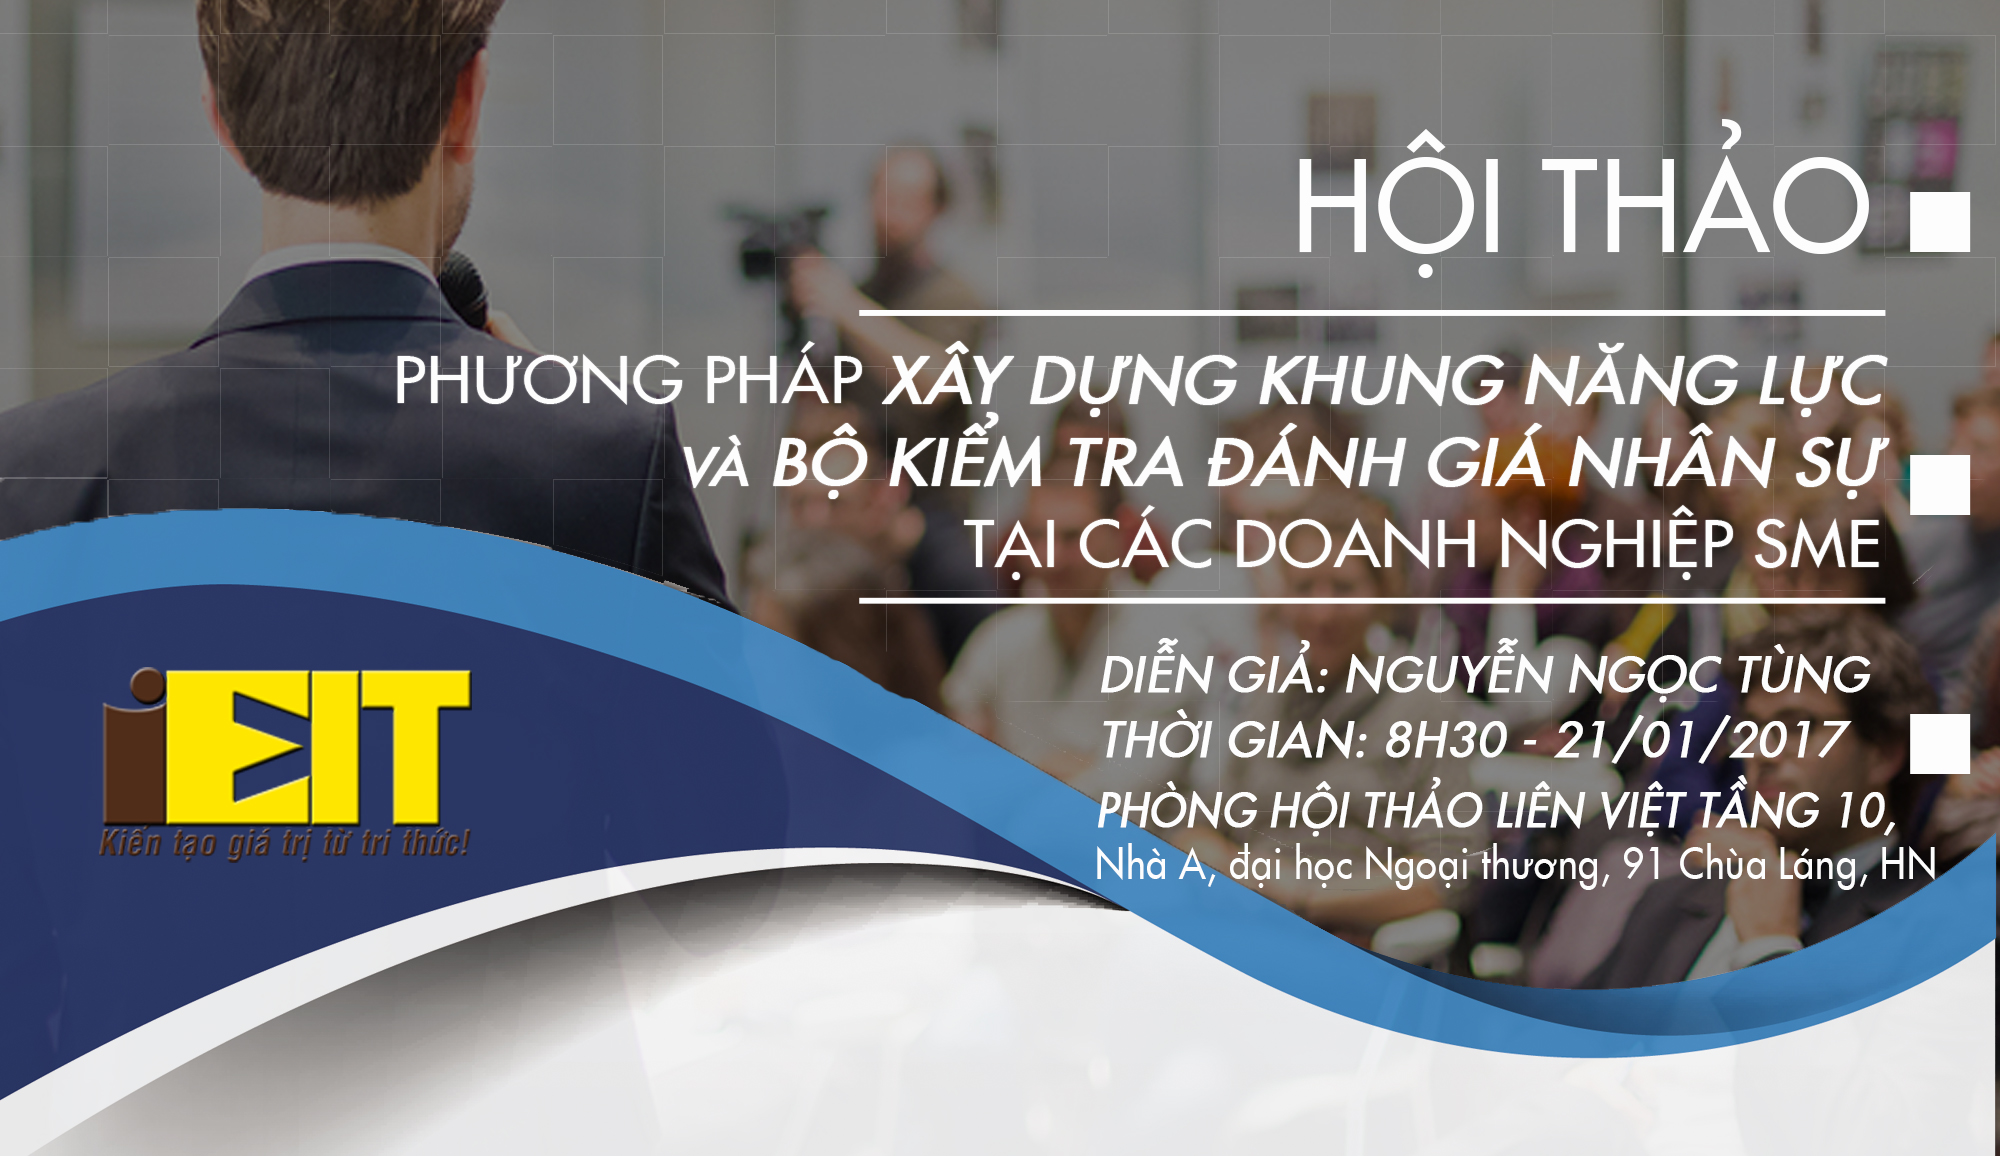 Hoi thao event copy